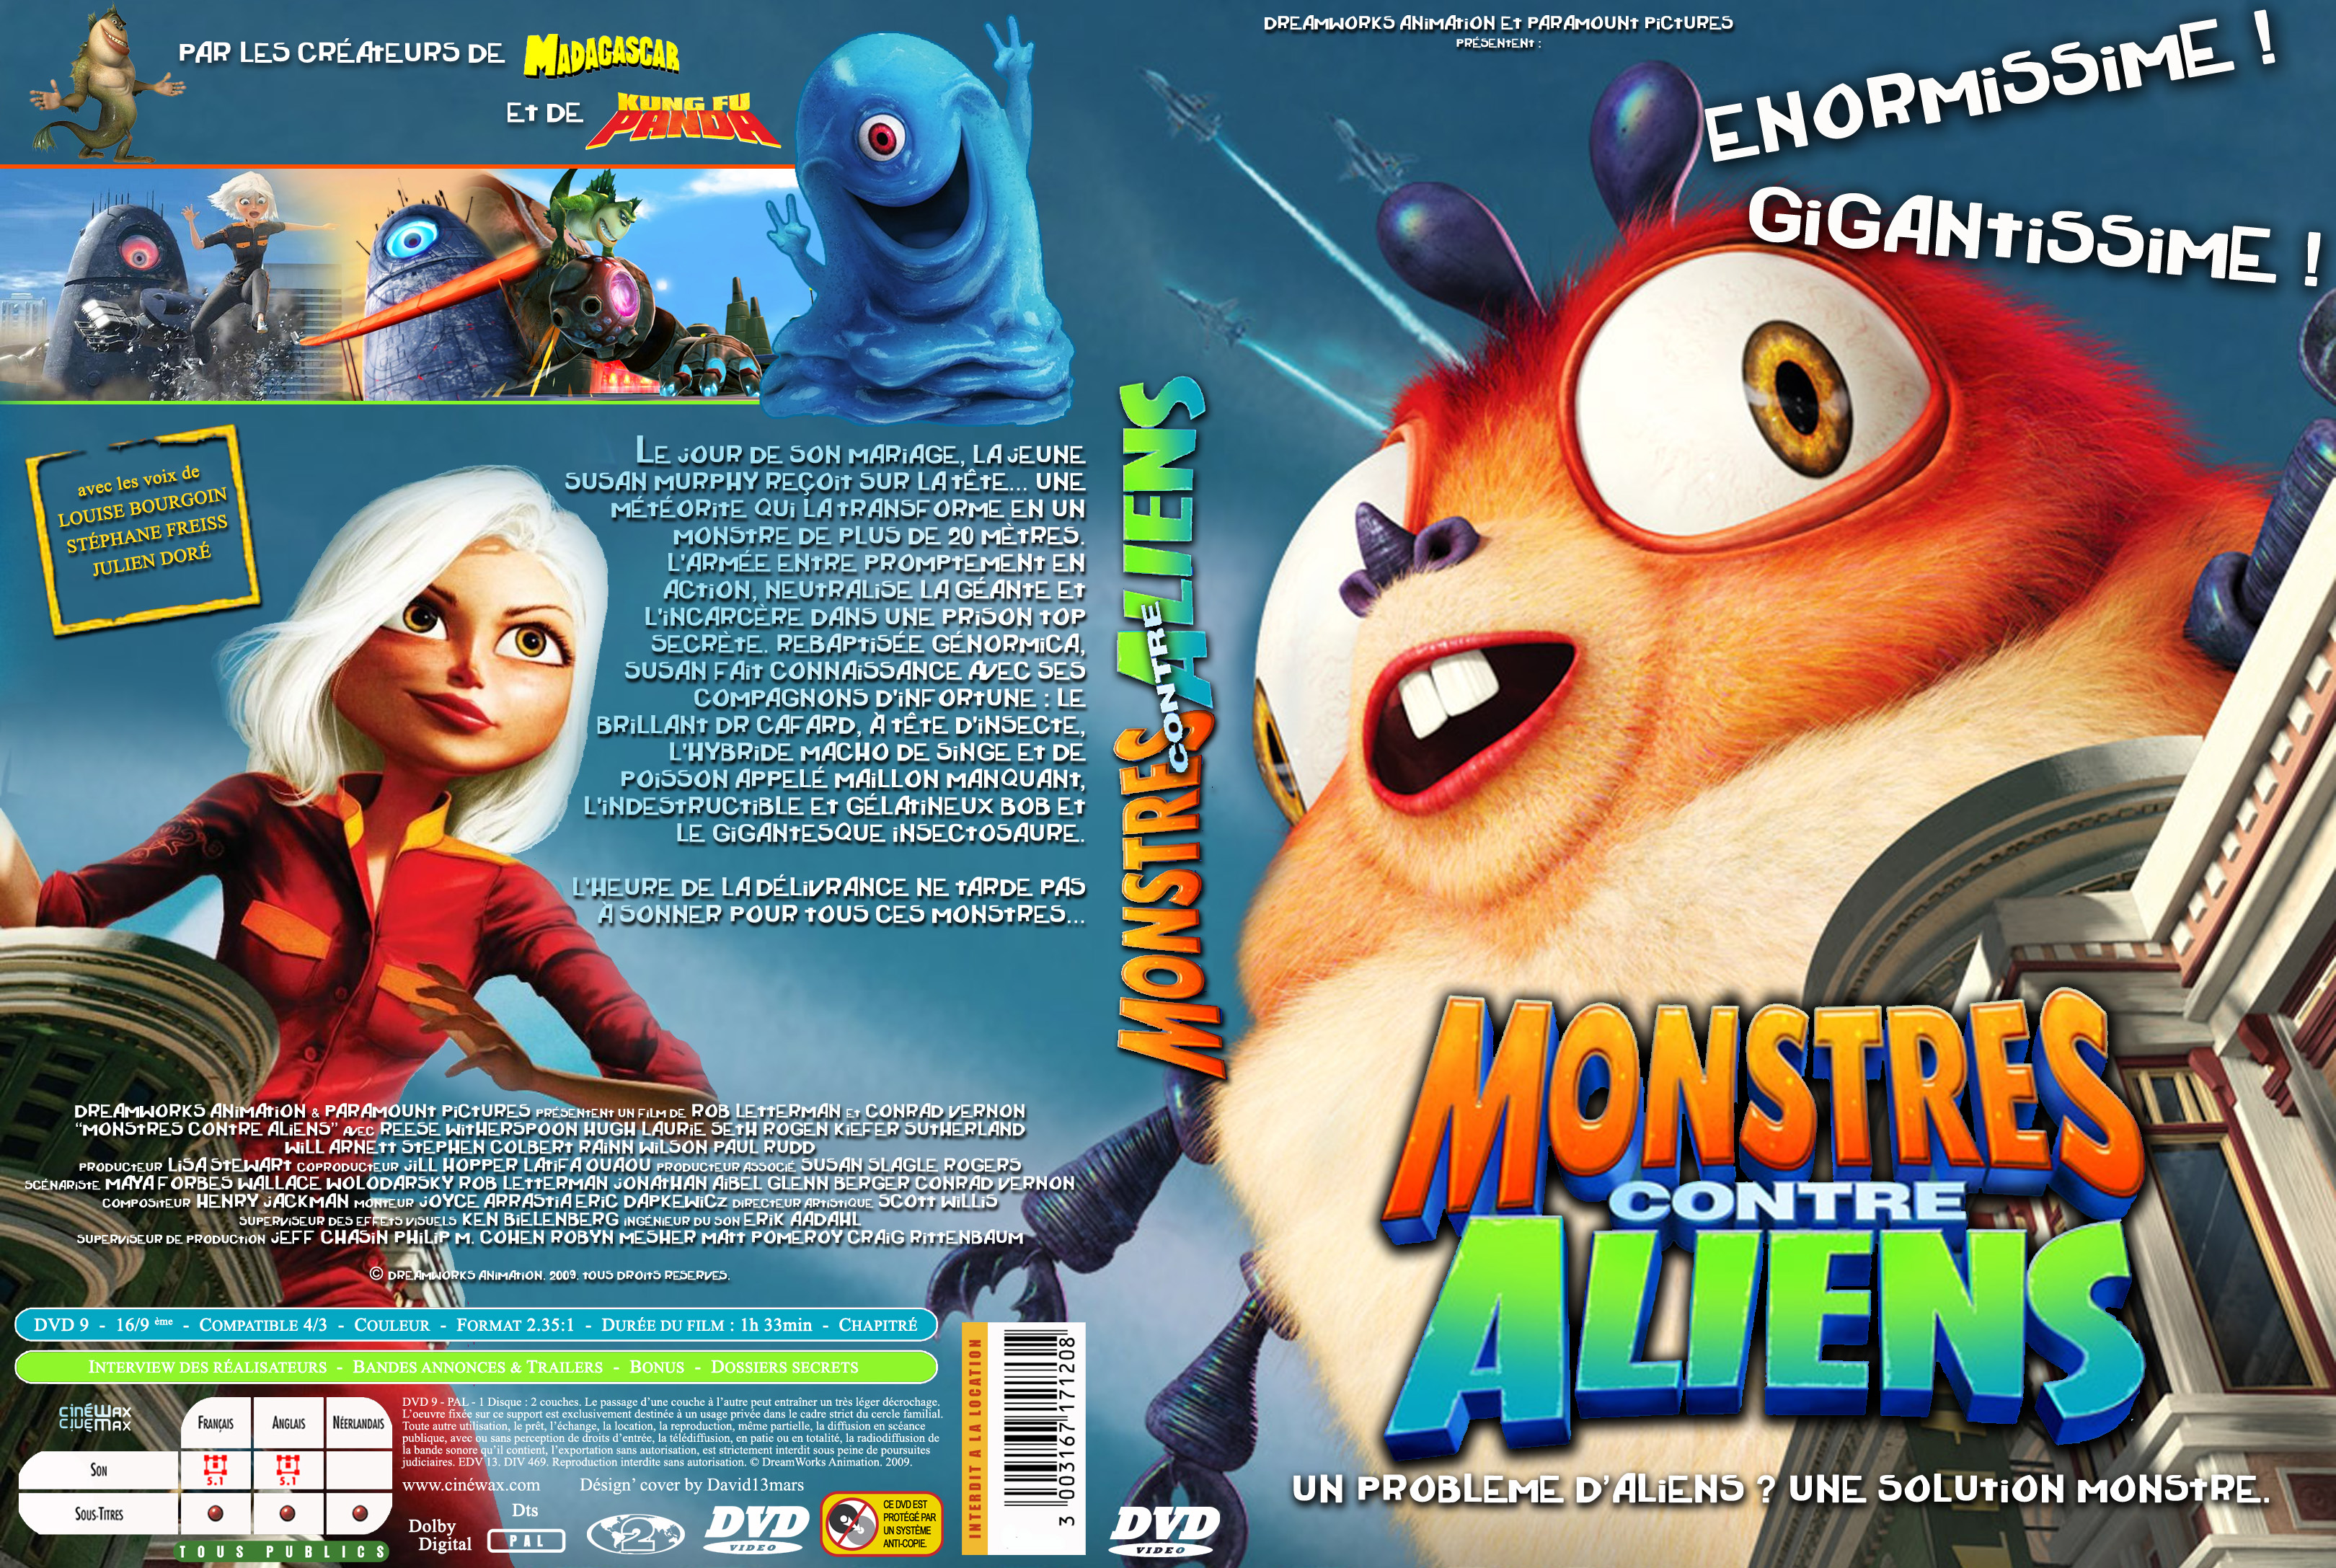 Monsters vs aliens susan gigantiss sex naked movie